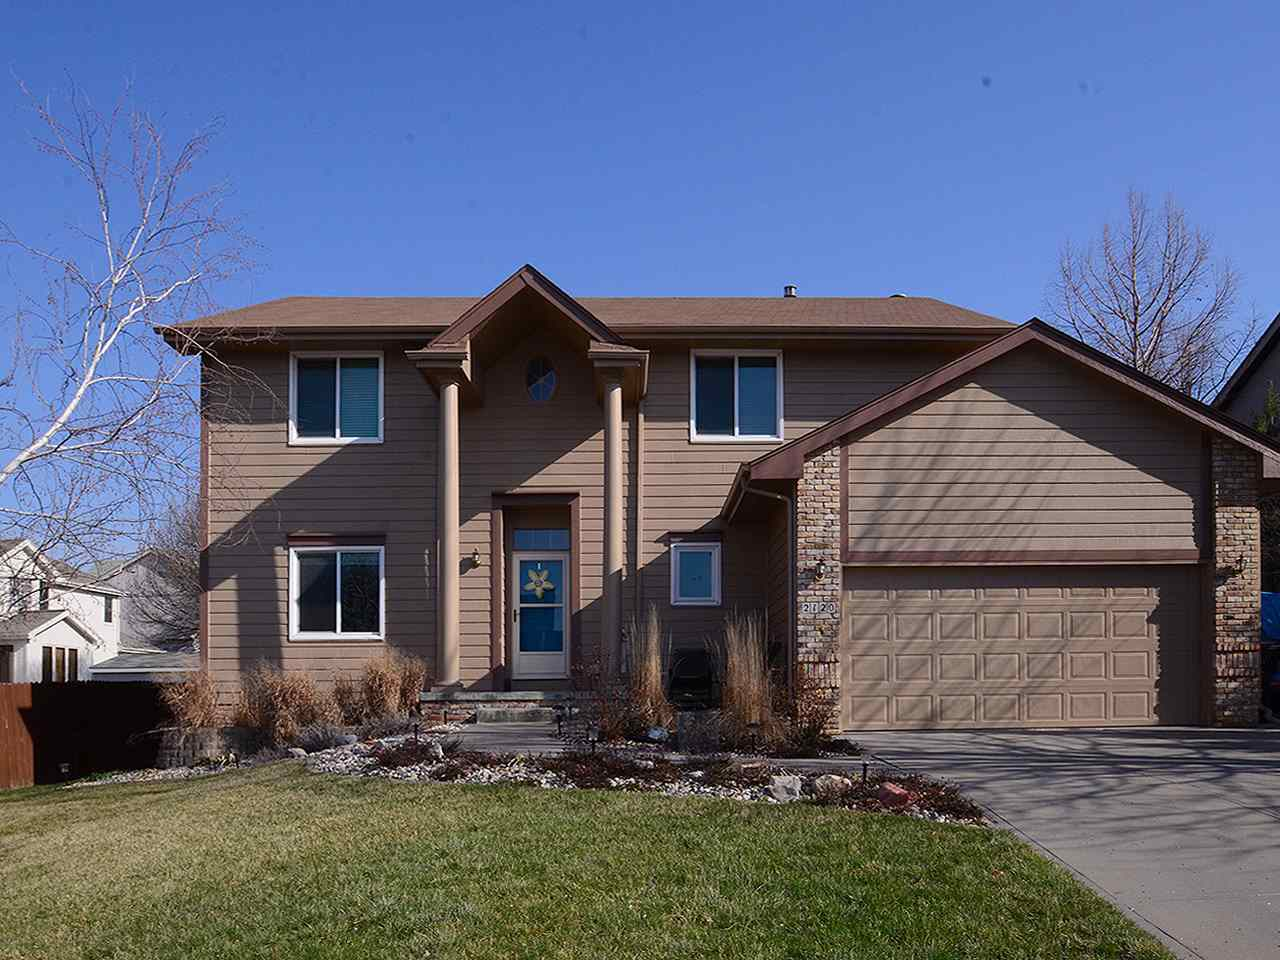 Detached Housing, 2 Story - Papillion, NE (photo 1)